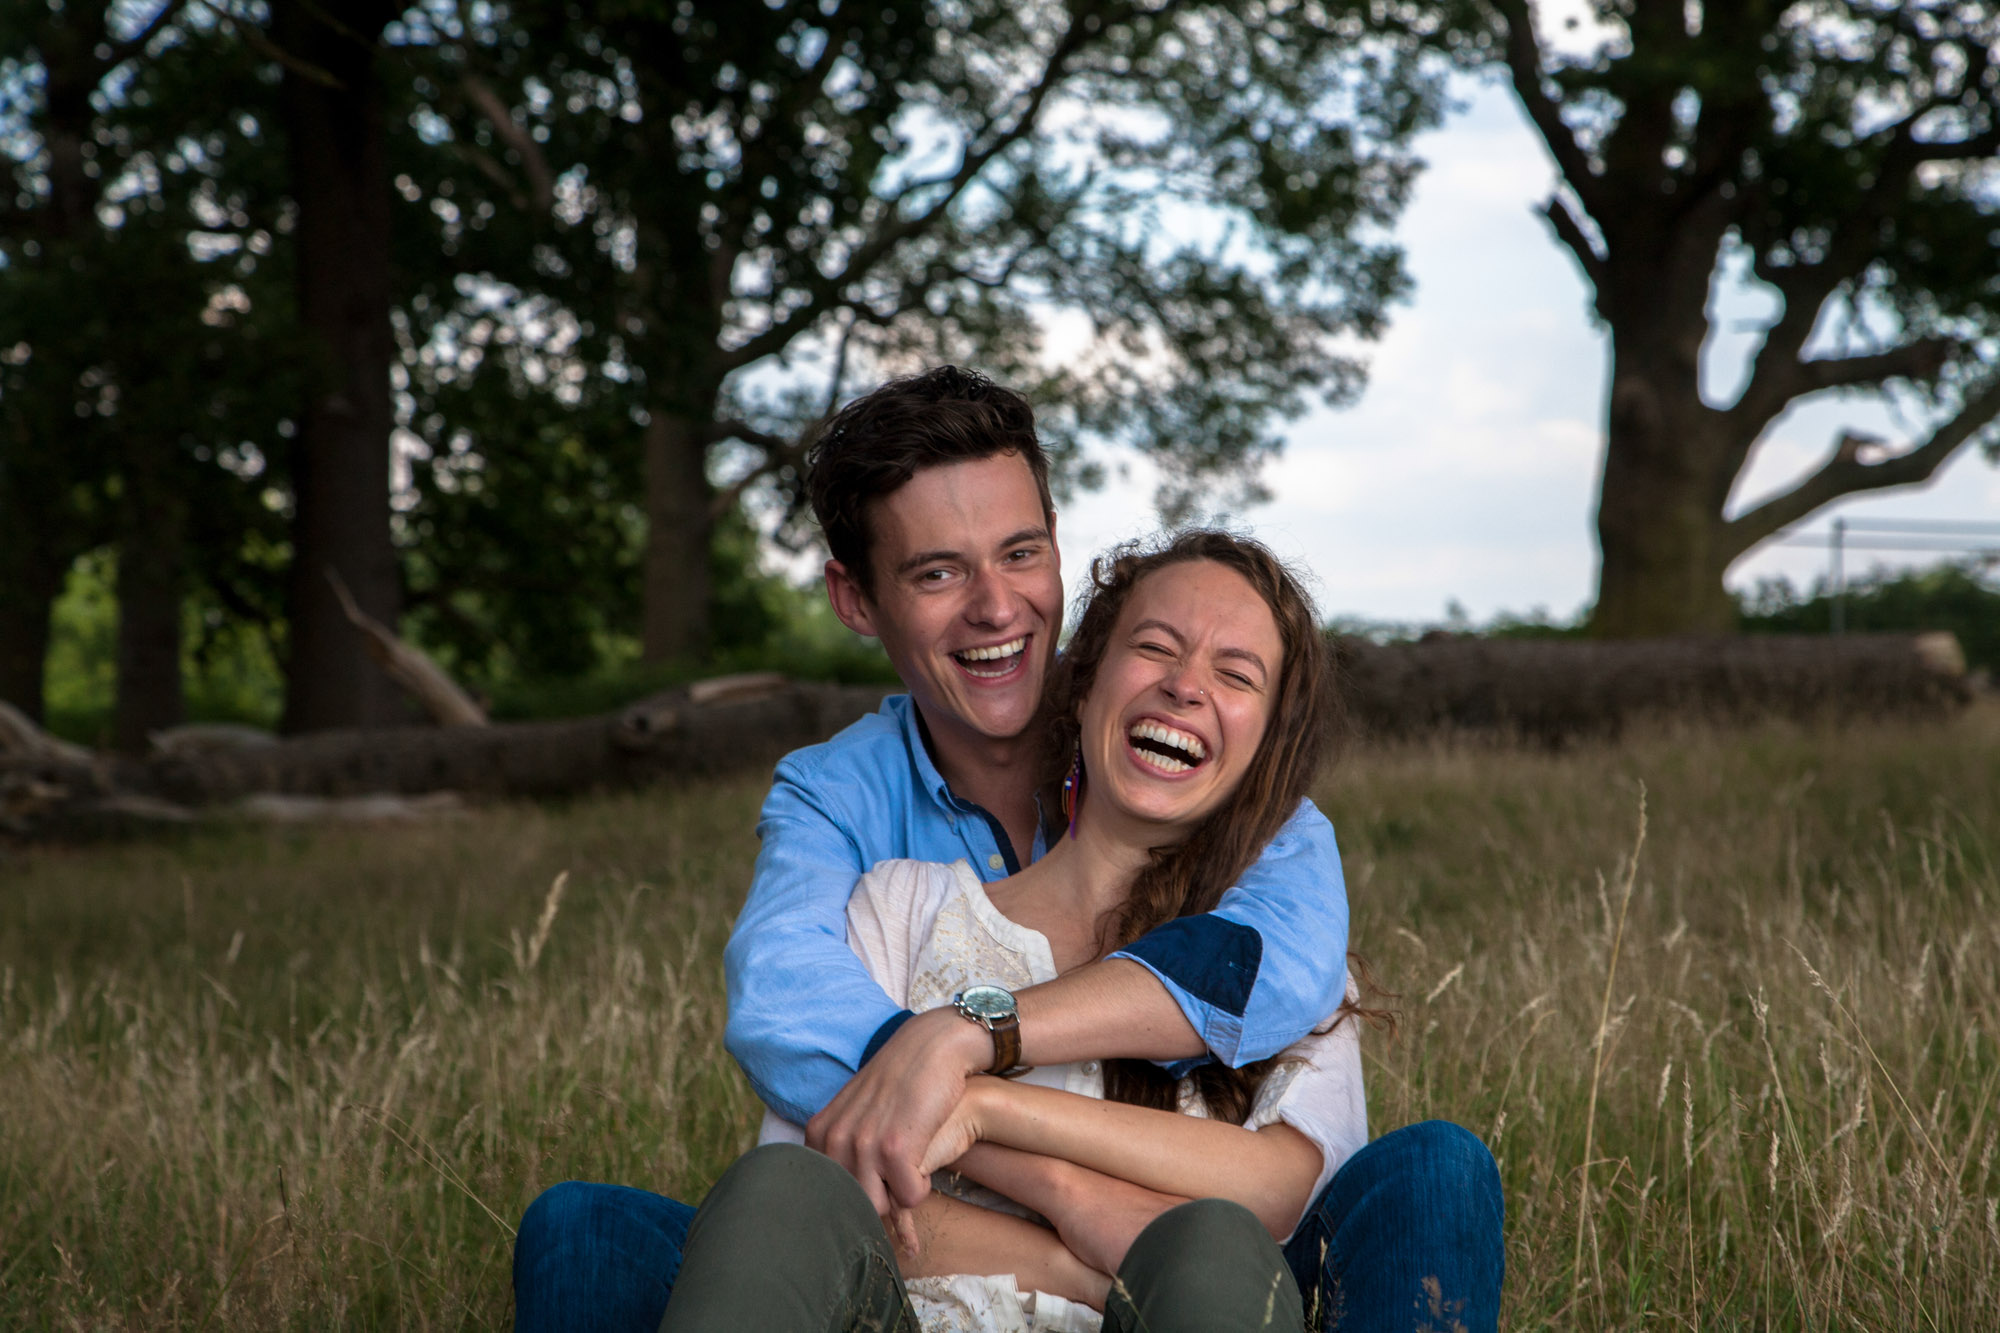 engagements-couples-love-photographer-oxford-london-jonathan-self-photography-23.jpg